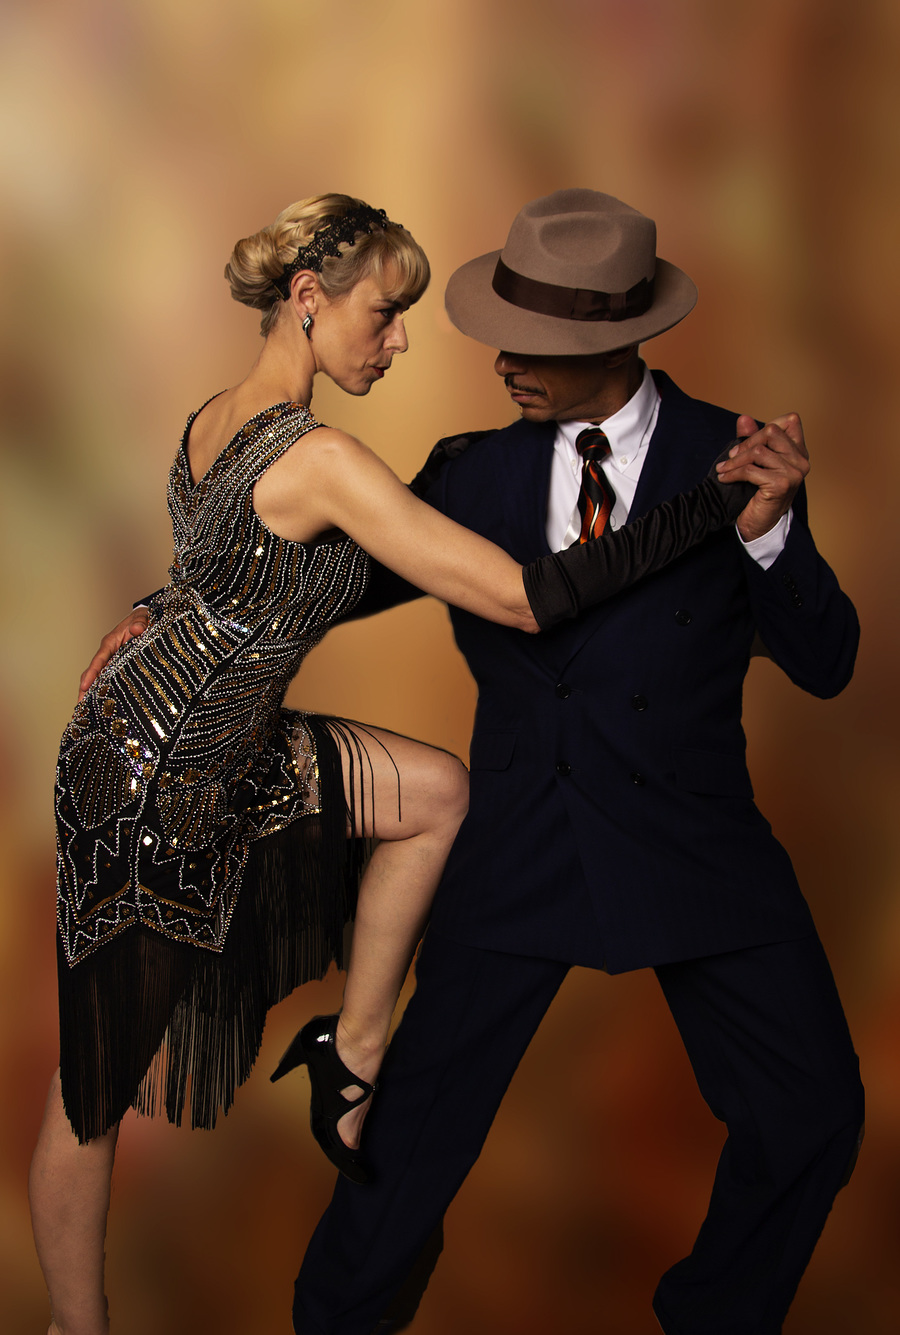 It takes two to tango / Photography by Val B, Models M e l a n y, Models Retro Rob, Taken at Inspire Studios Ltd / Uploaded 16th June 2019 @ 03:53 PM